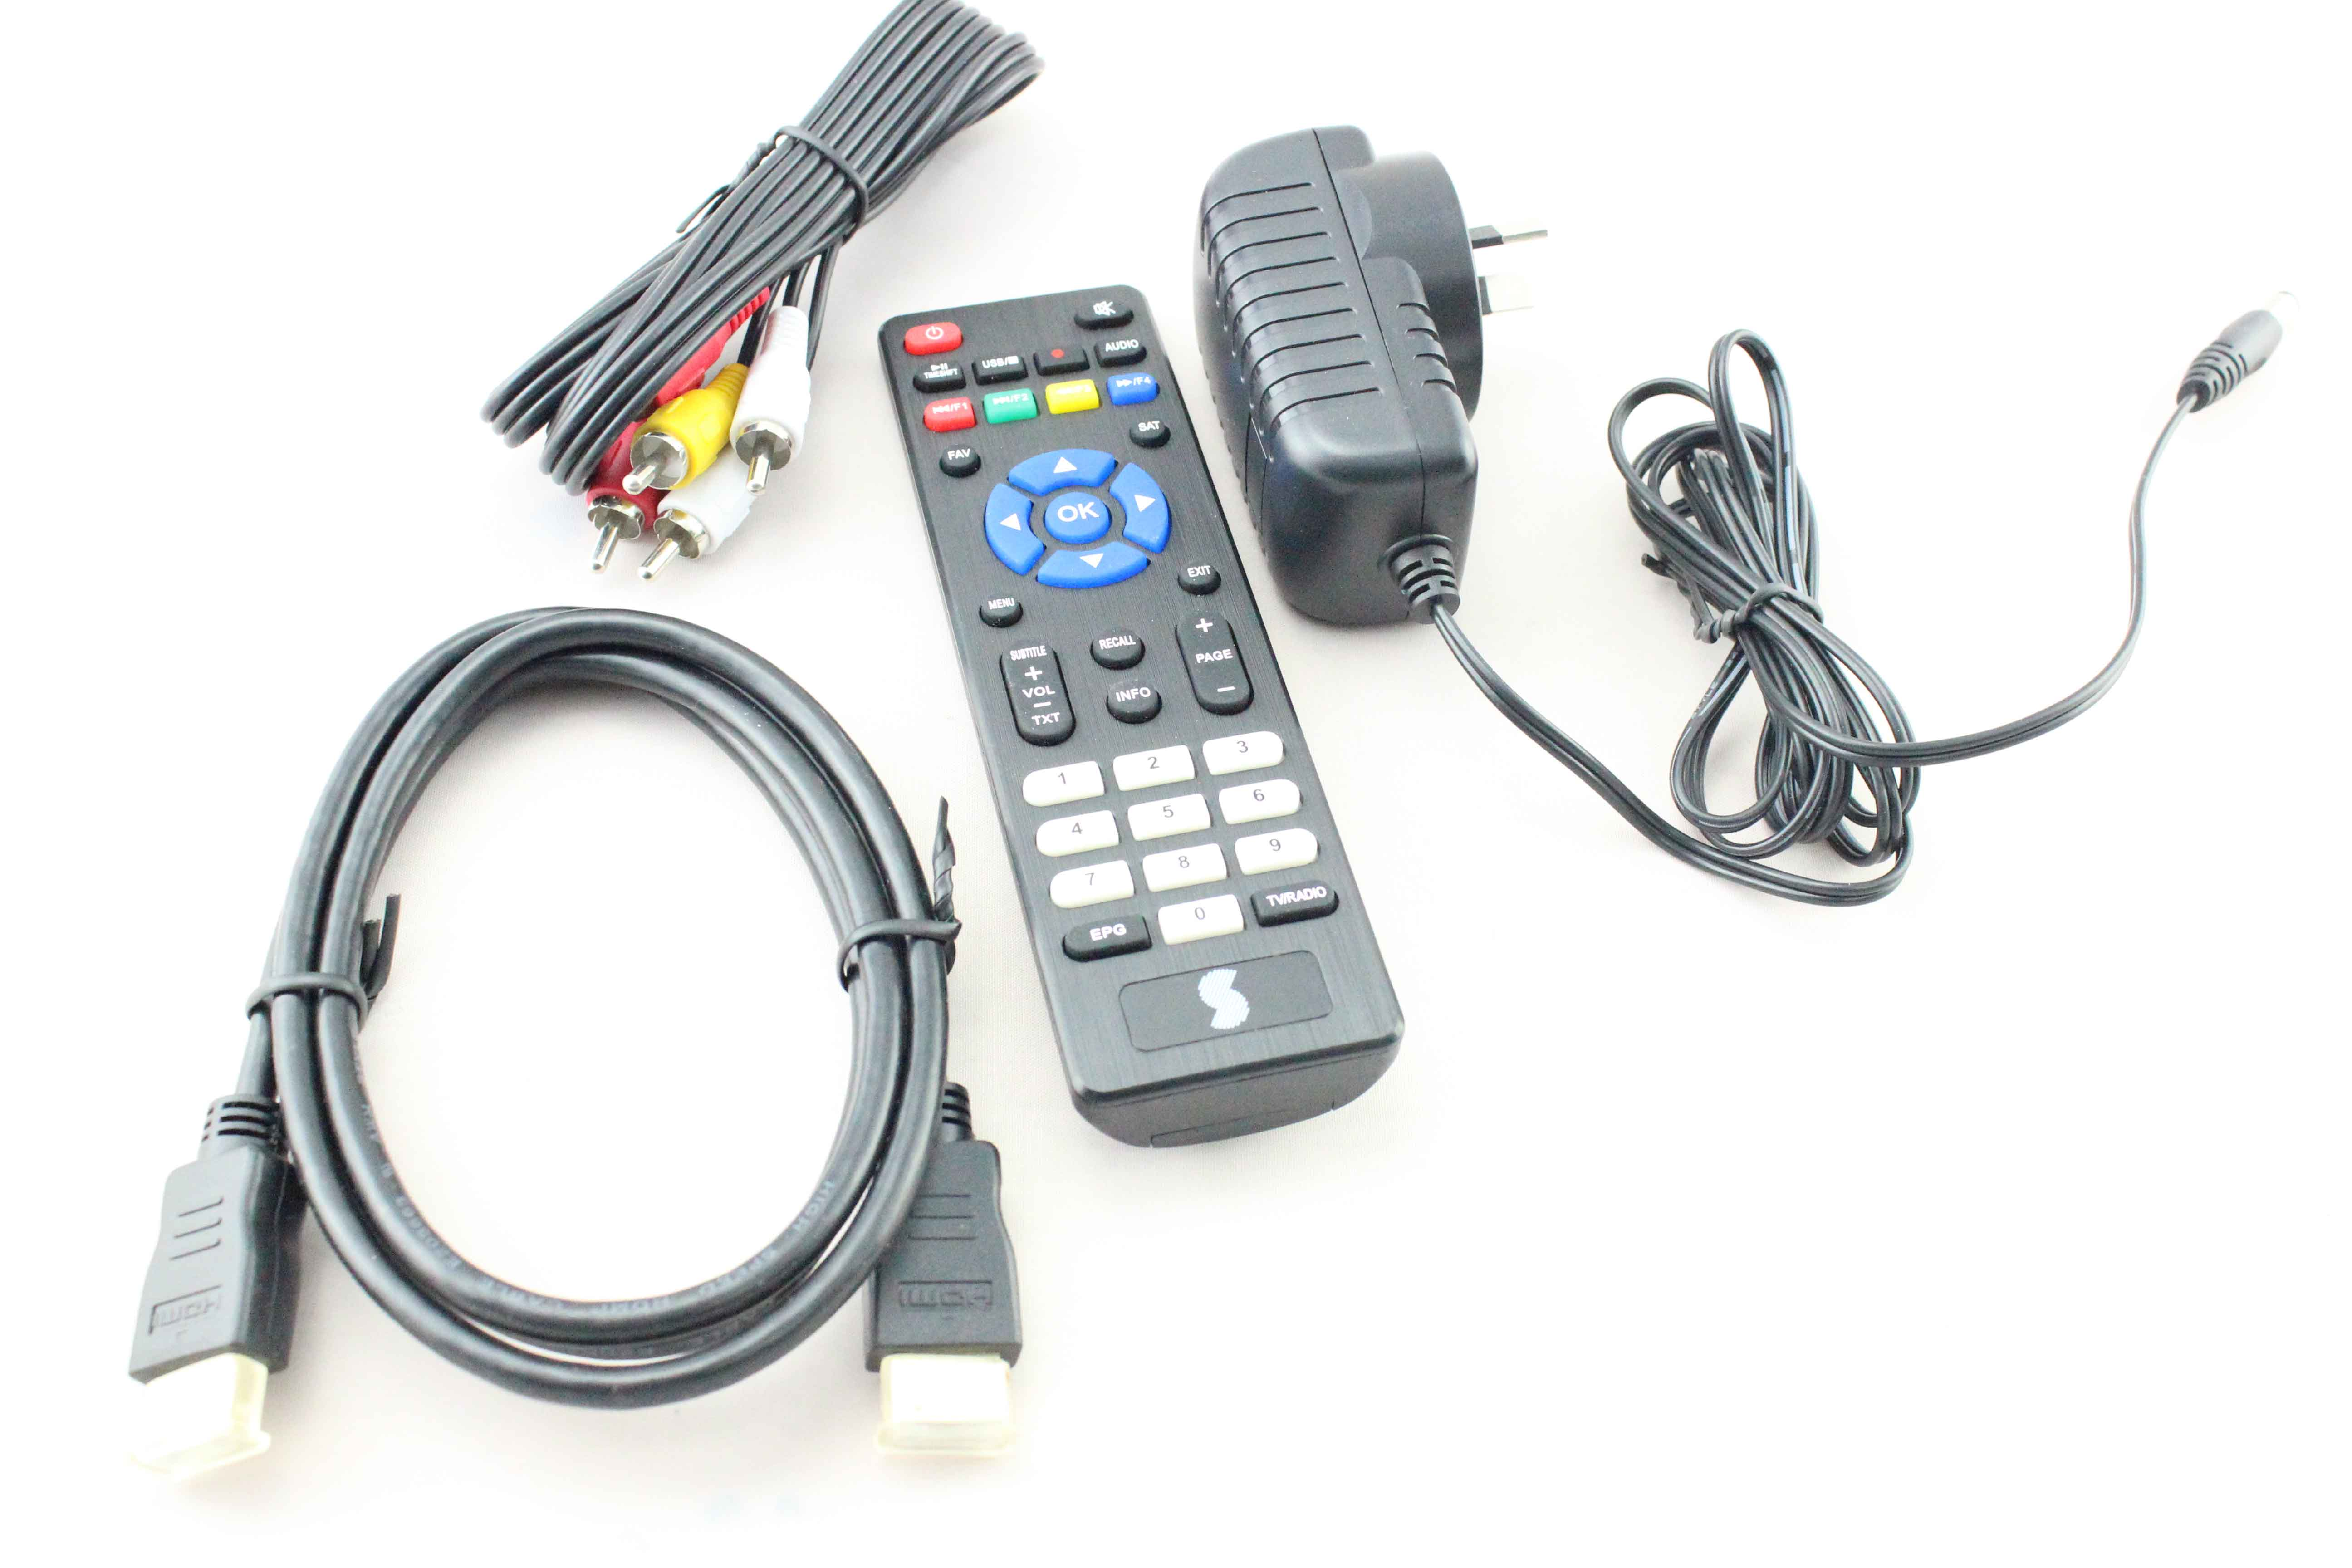 STRONG SRT 4955 HD Satellite TV Receiver MPEG4 DVBS2 PVR Media Player -  Digitronic